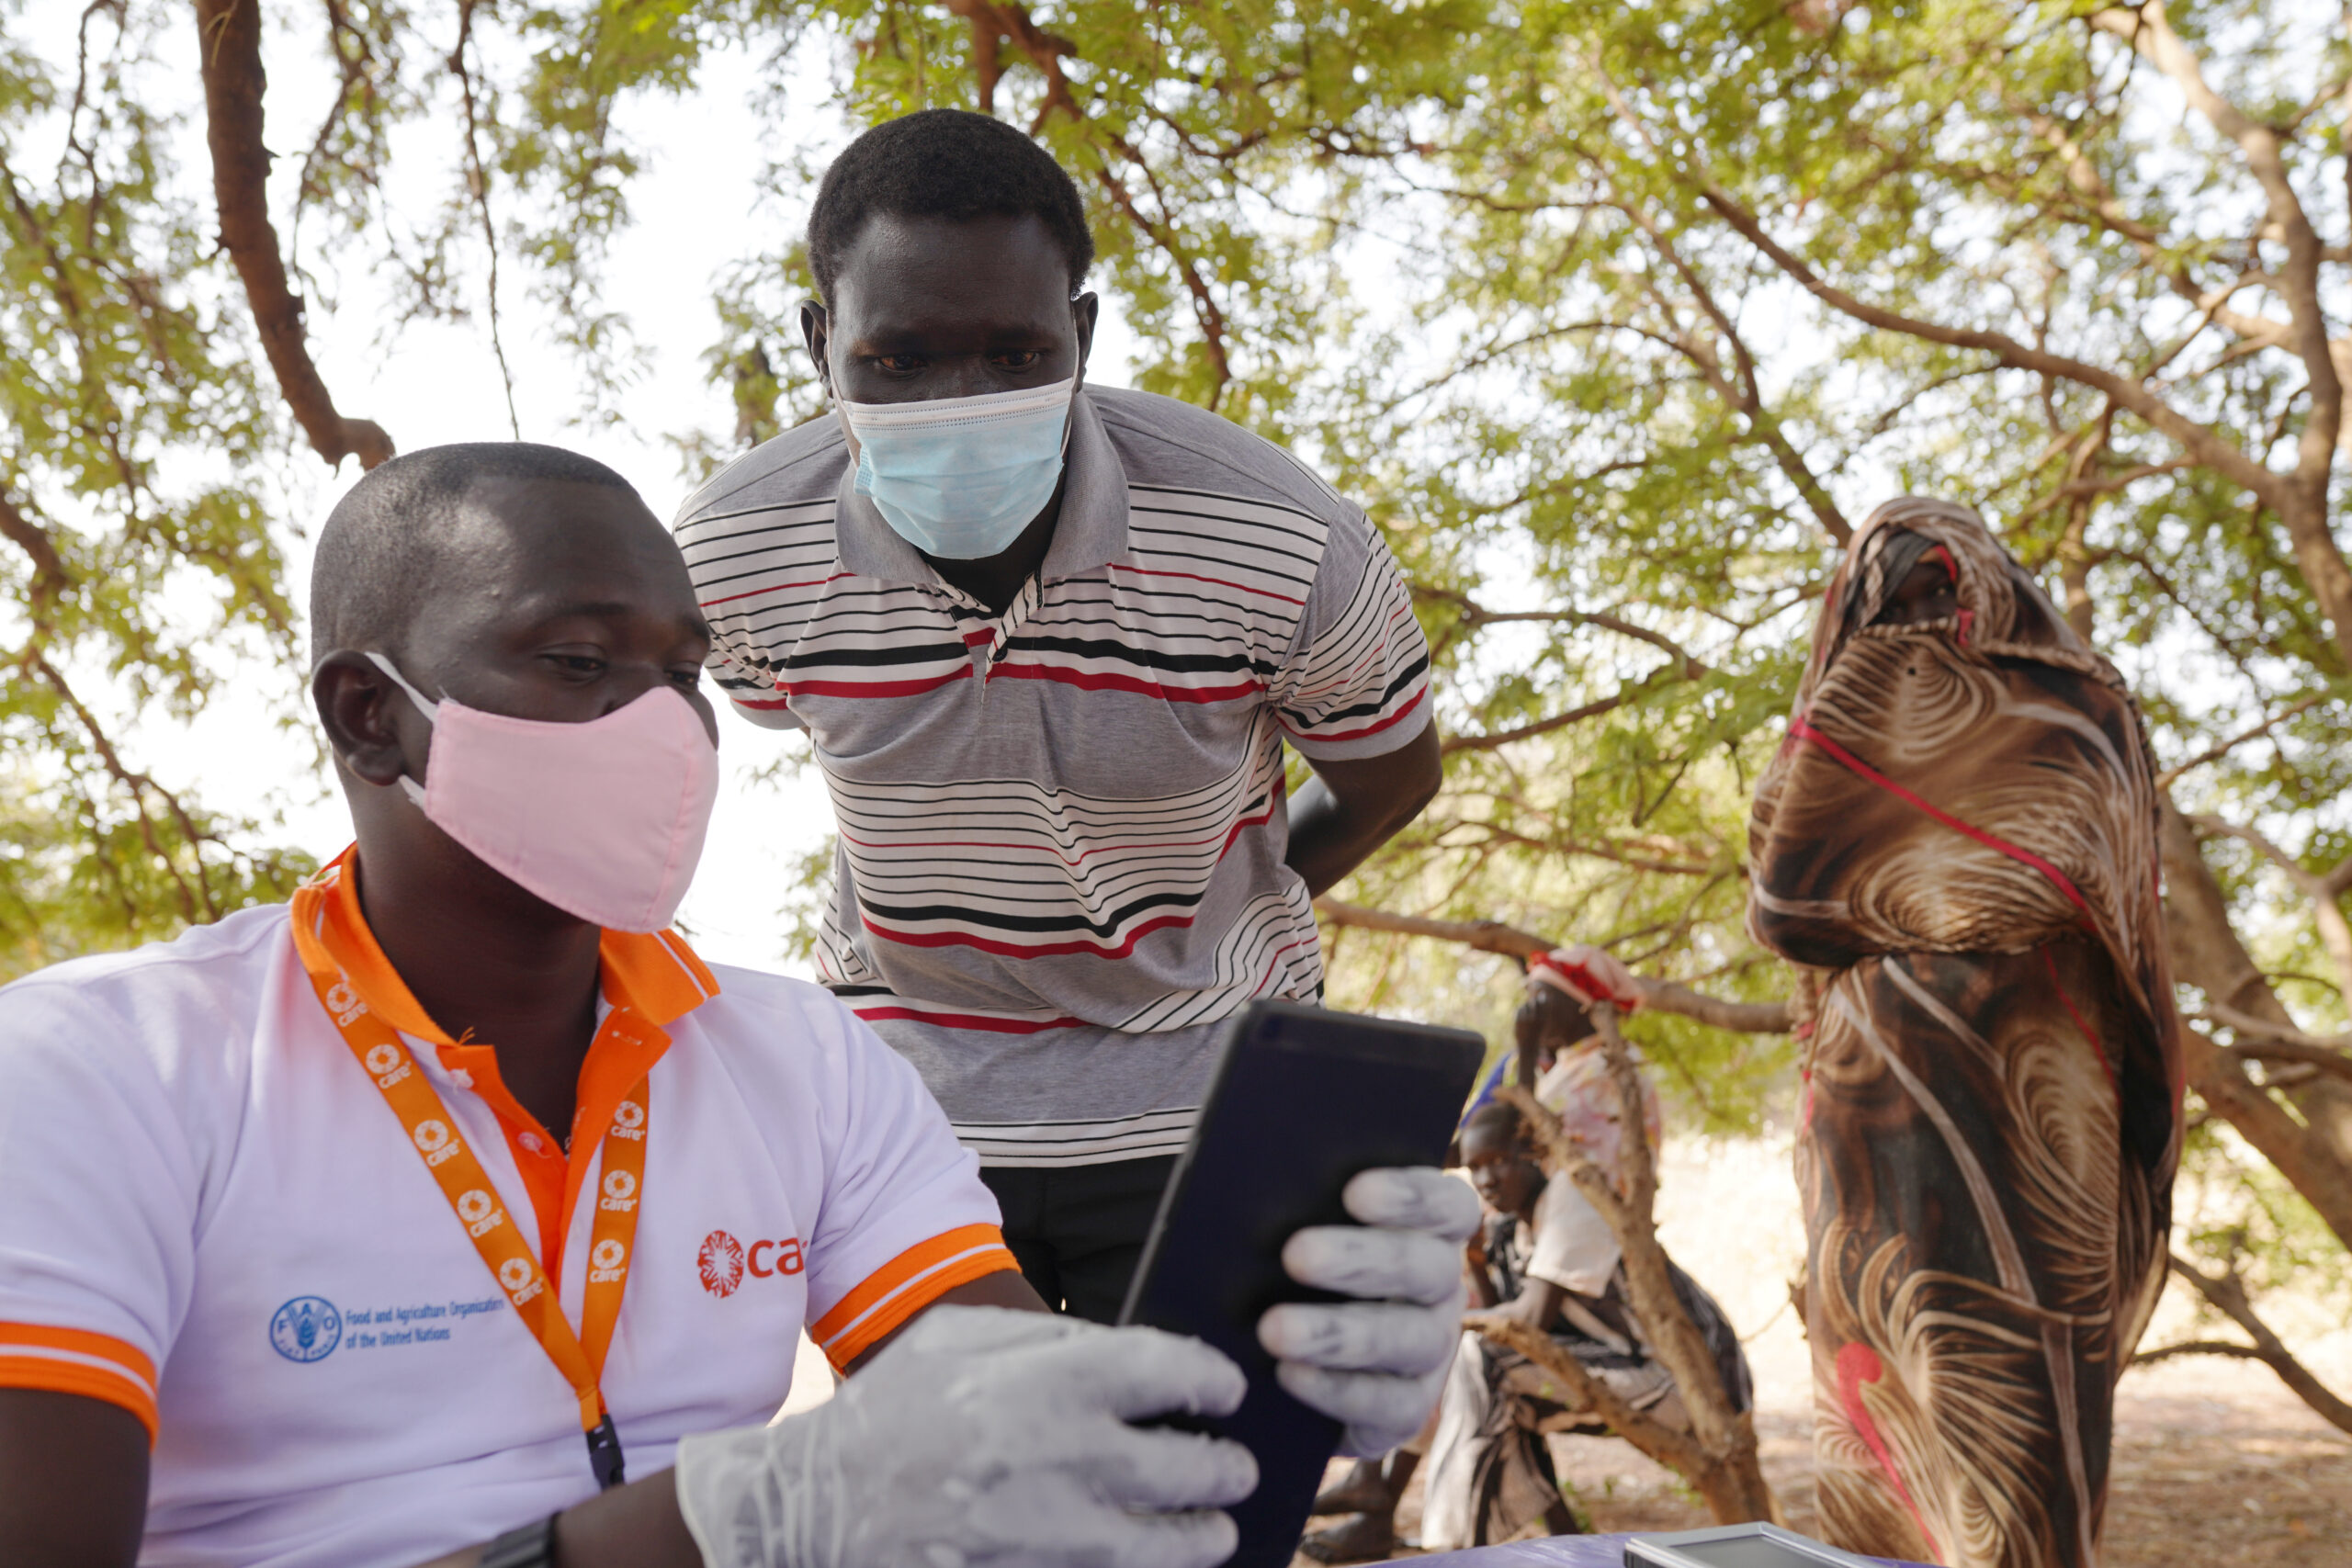 Registering for seeds and tools distribution in South Sudan.